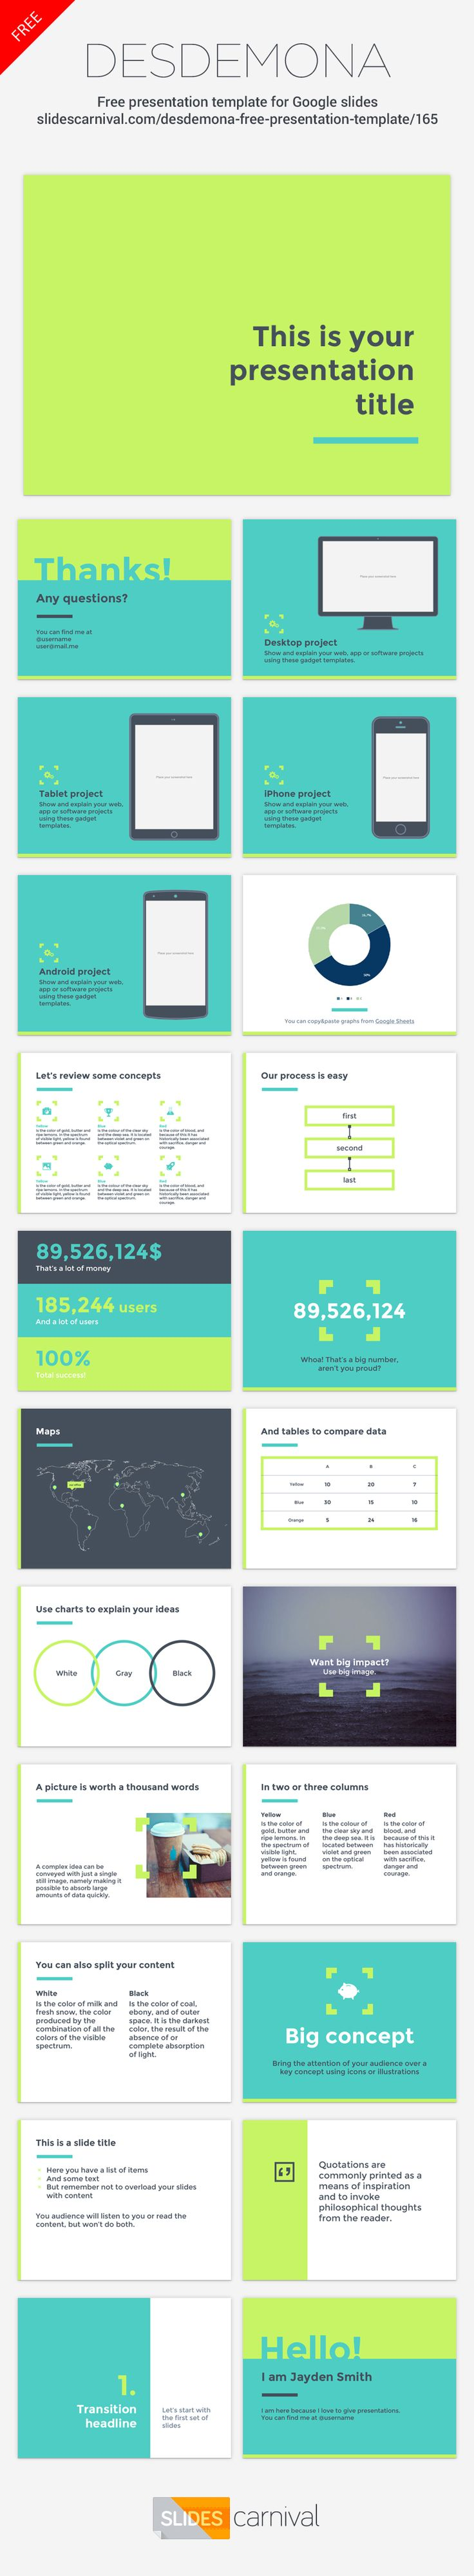 72 best free presentation templates images on pinterest free this fresh template design uses vivid colors and modern layout to engage your public this presentation layoutfree presentation pronofoot35fo Image collections